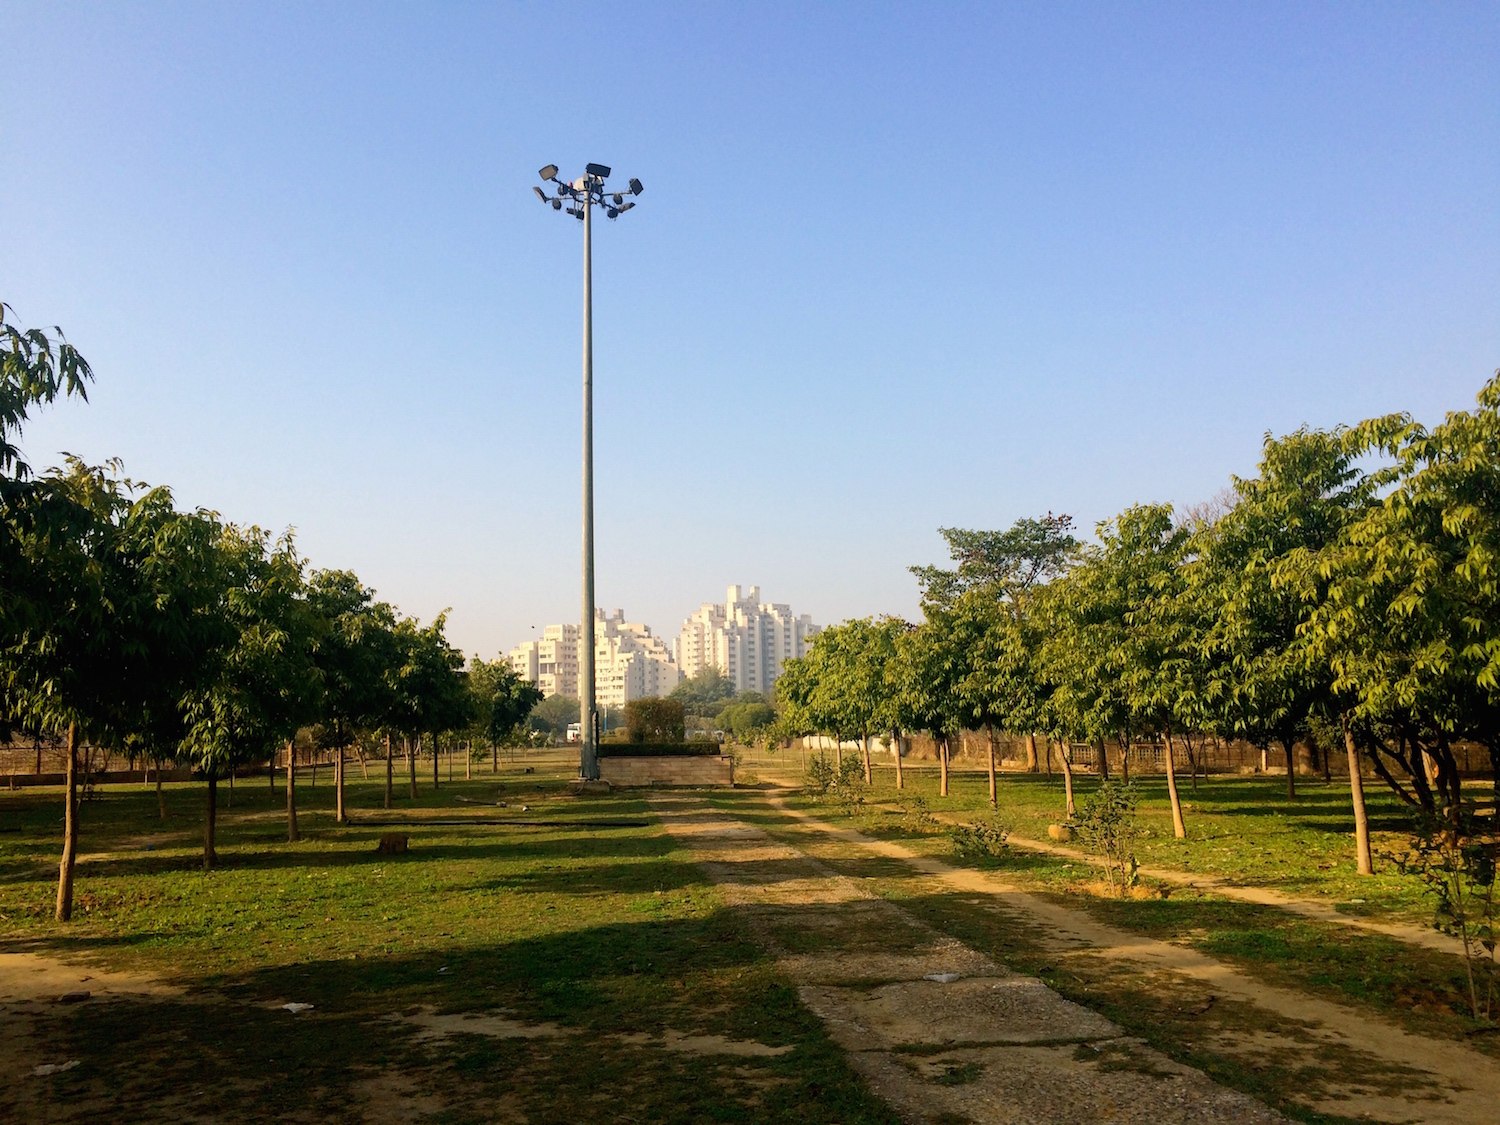 It's green and relatively clean, but deserted. One of the smaller parks in Leisure Valley